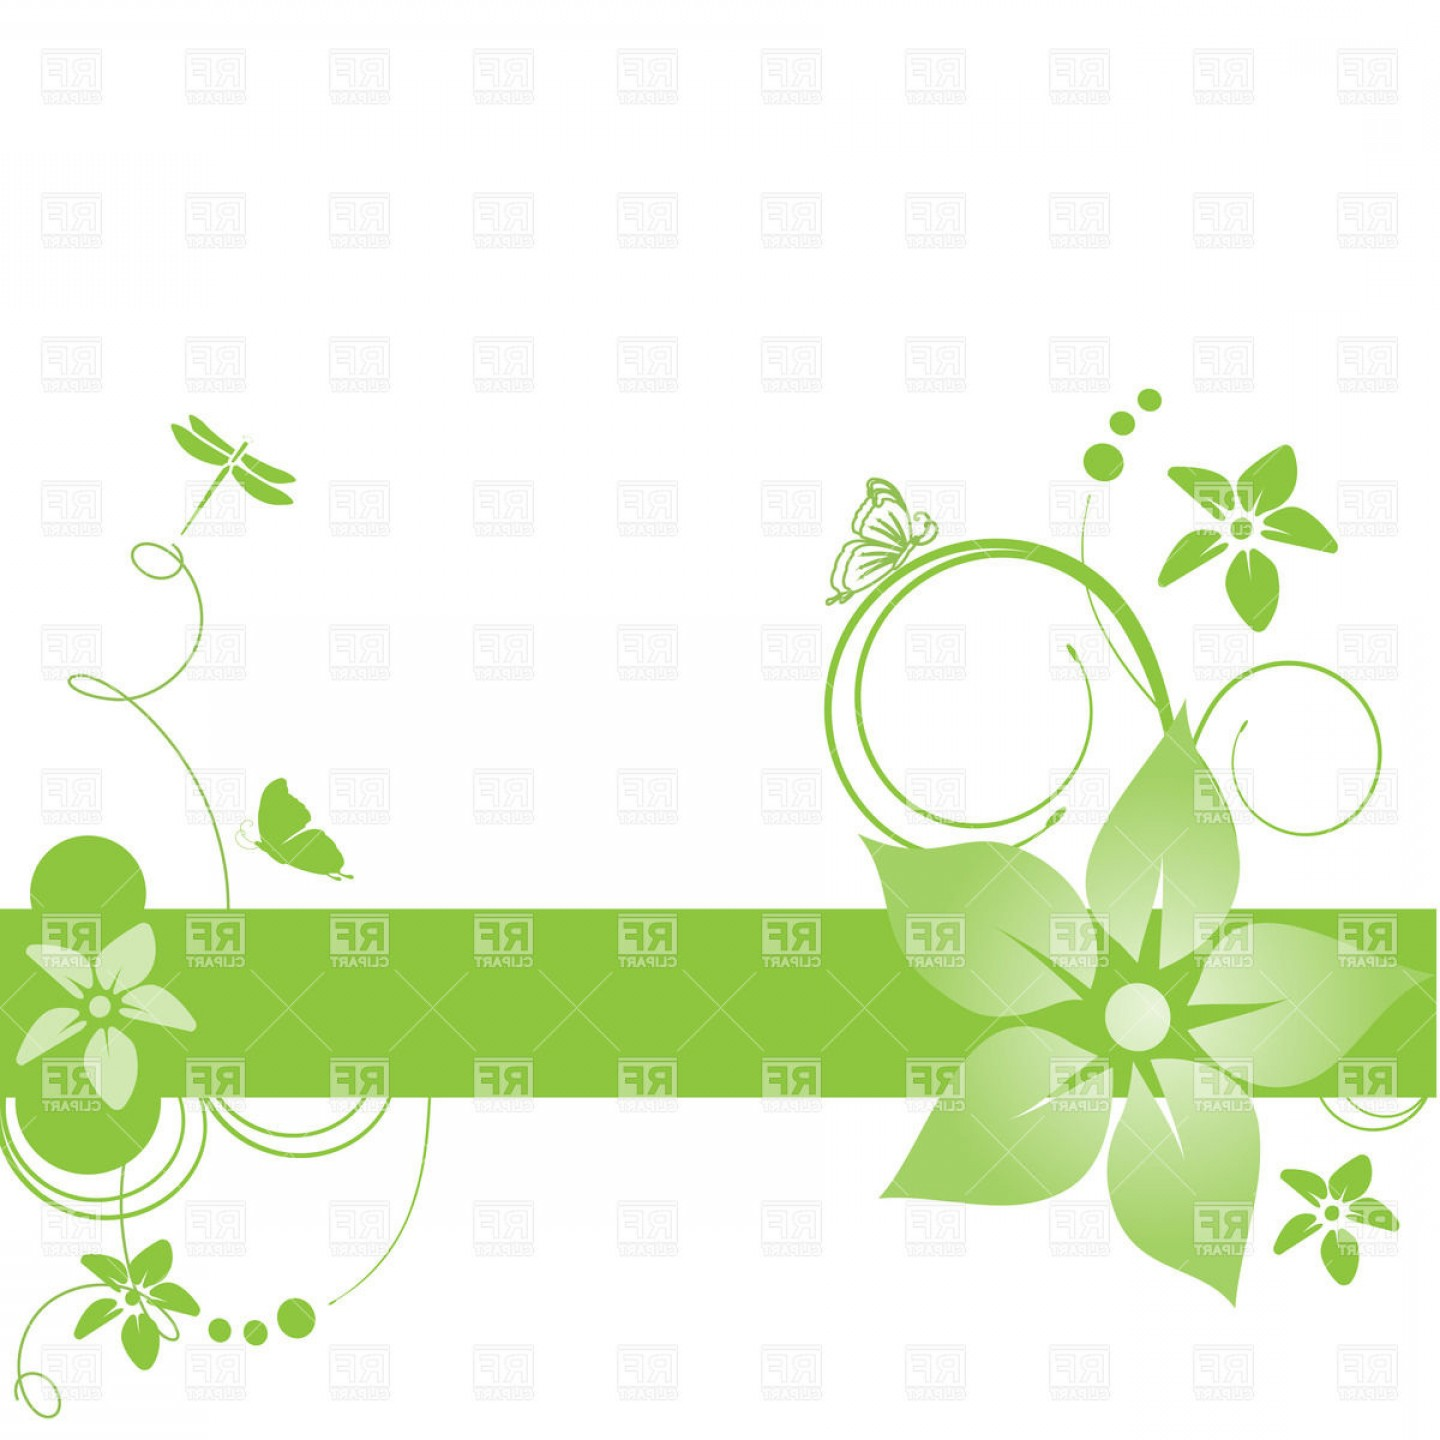 Green Flower Vector Designs: Abstract Green Banner With Simple Flowers And Curls Vector Clipart